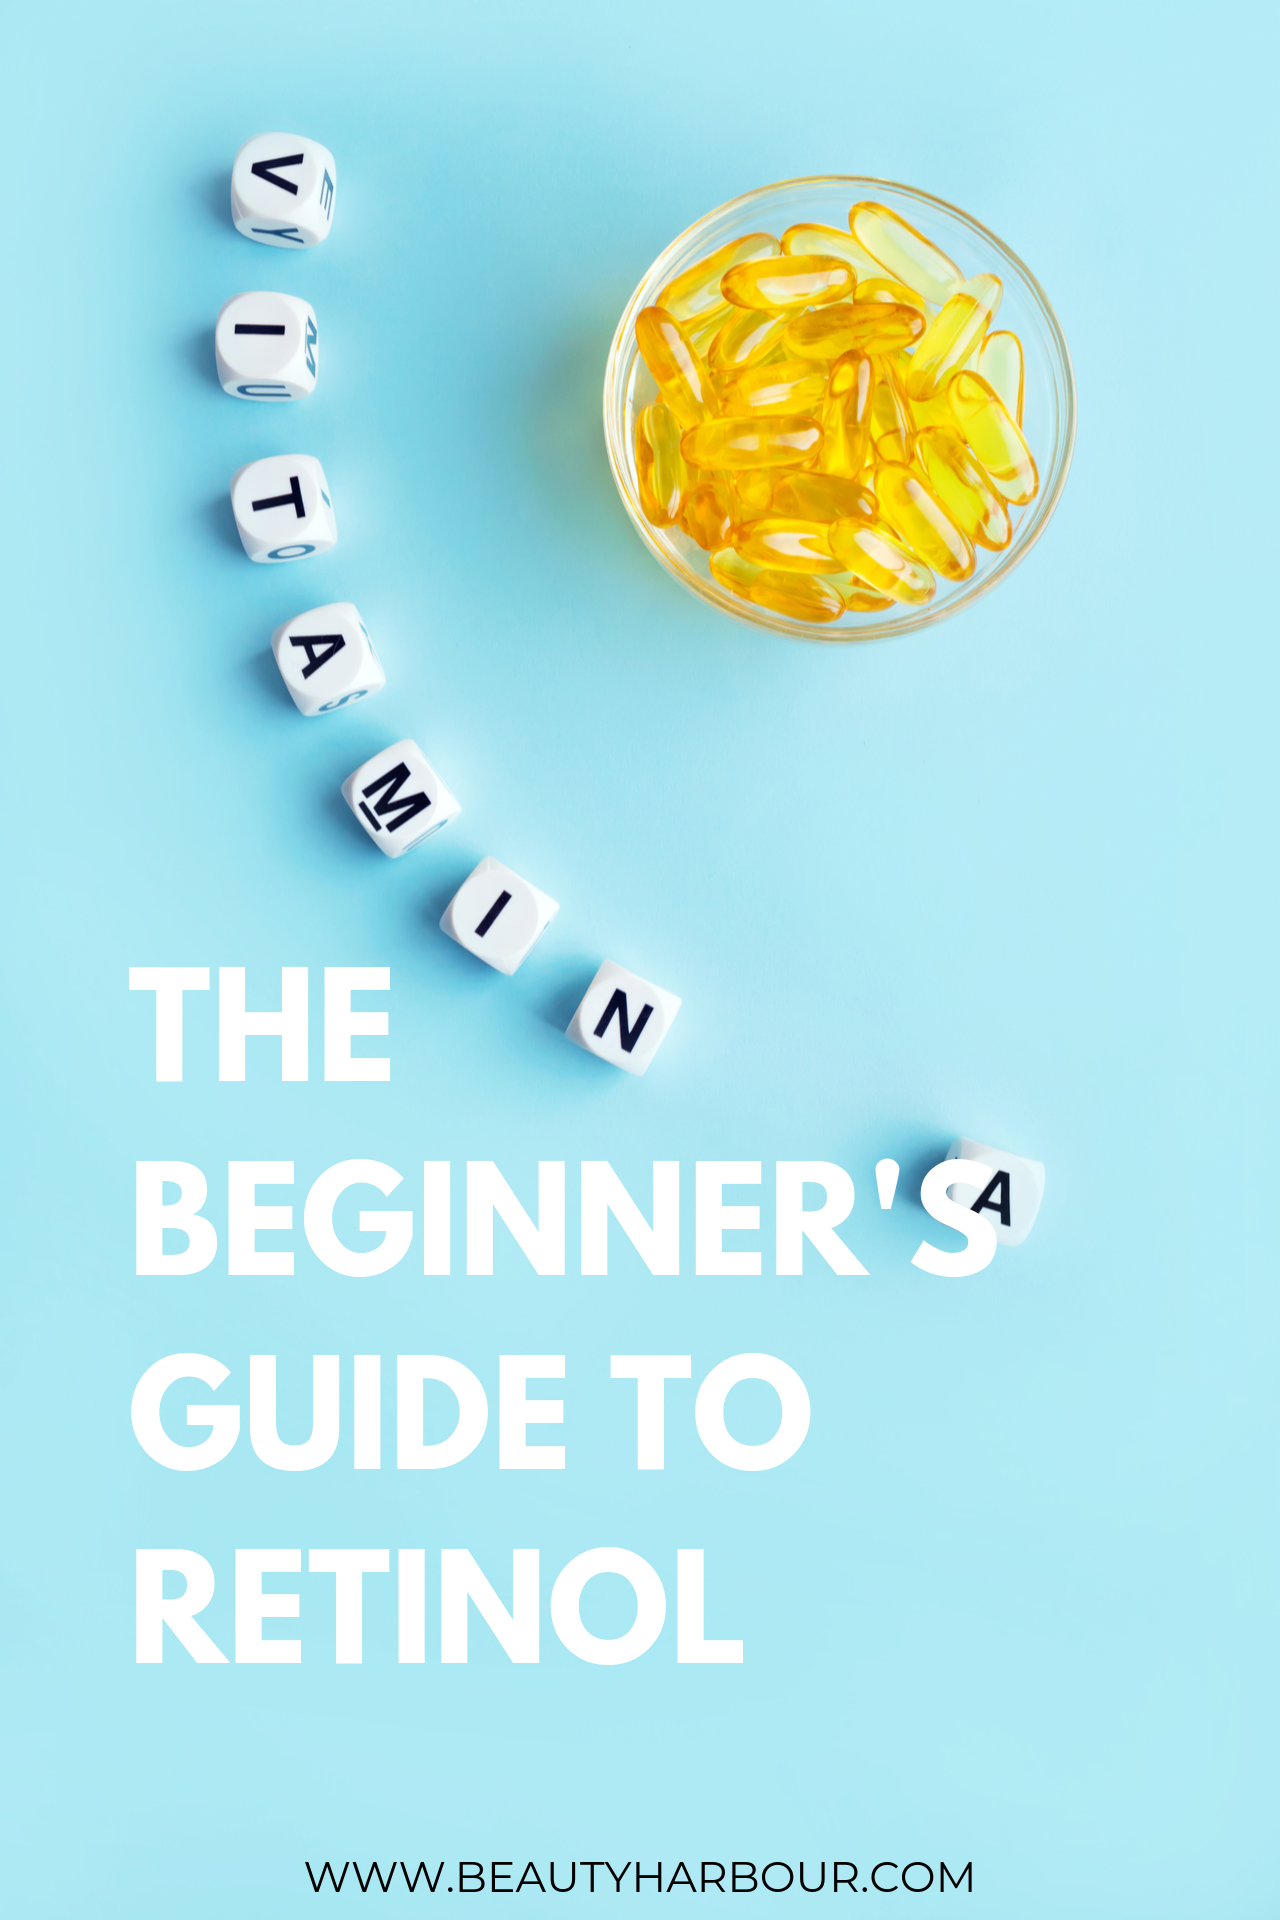 the beginners guide to retinol